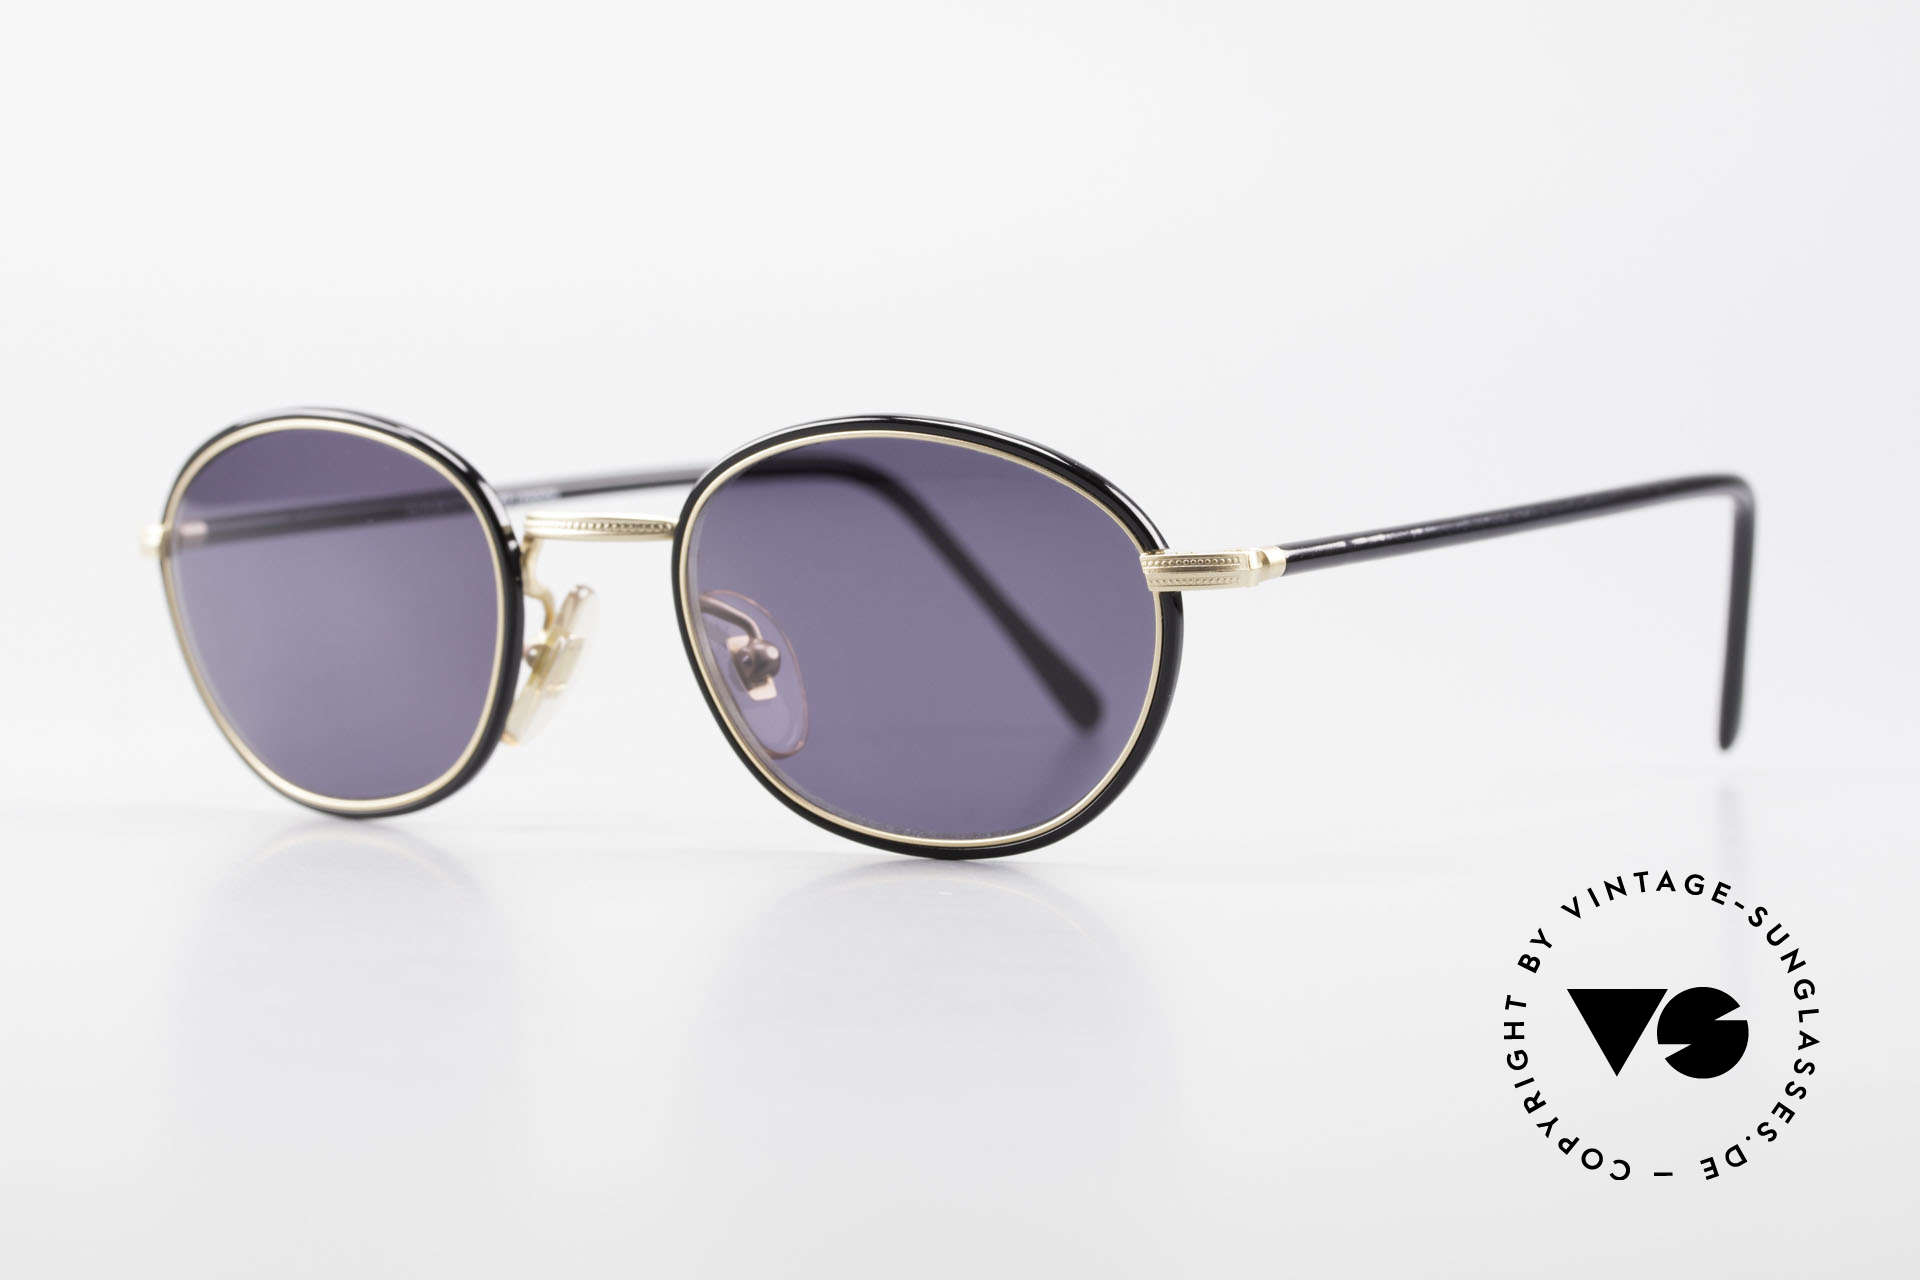 Cutler And Gross 0394 Classic Vintage Sunglasses, stylish & distinctive in absence of an ostentatious logo, Made for Men and Women